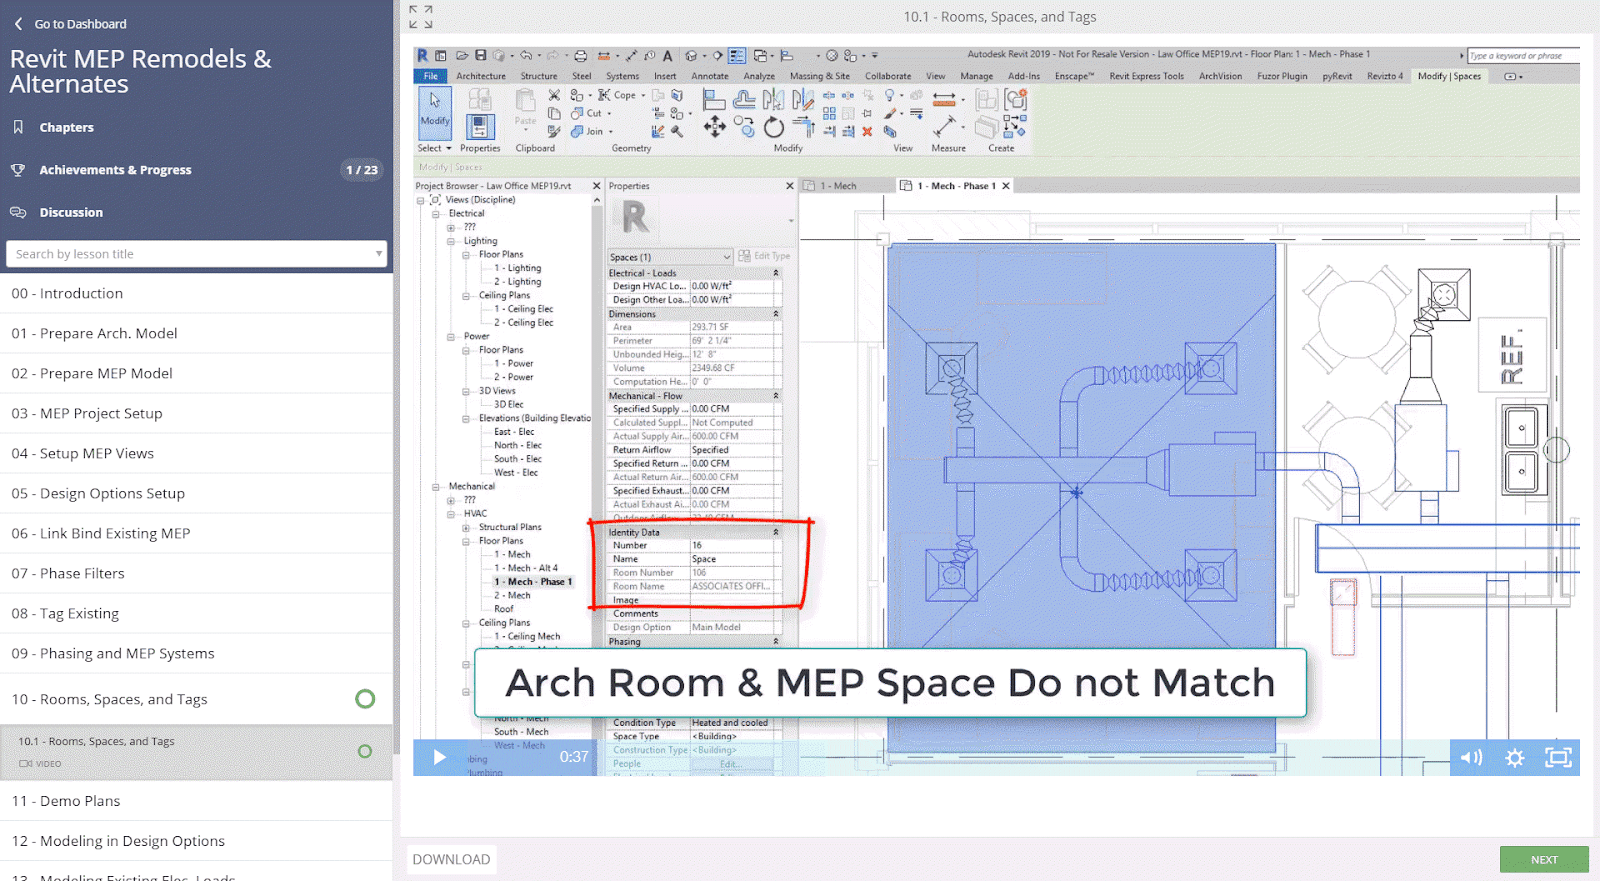 BIM Chapters: New ArchSmarter Course - Revit MEP Remodels